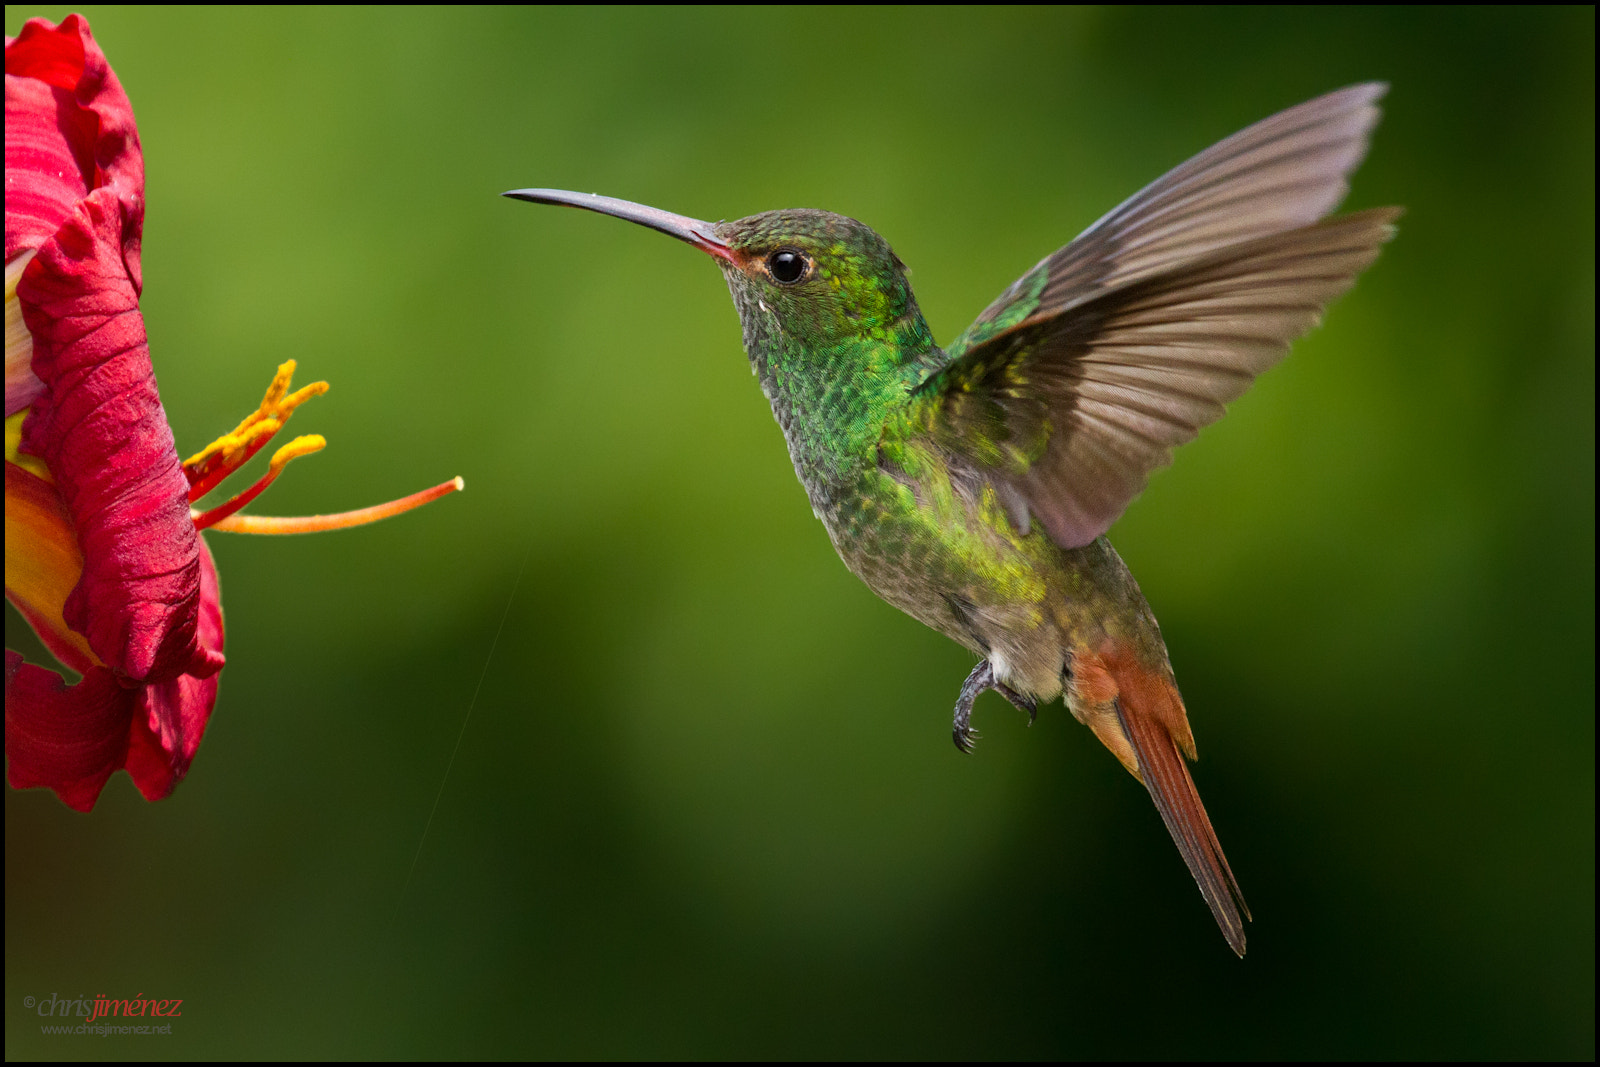 Photograph Rufous-tailed Hummingbird by Chris Jimenez on 500px